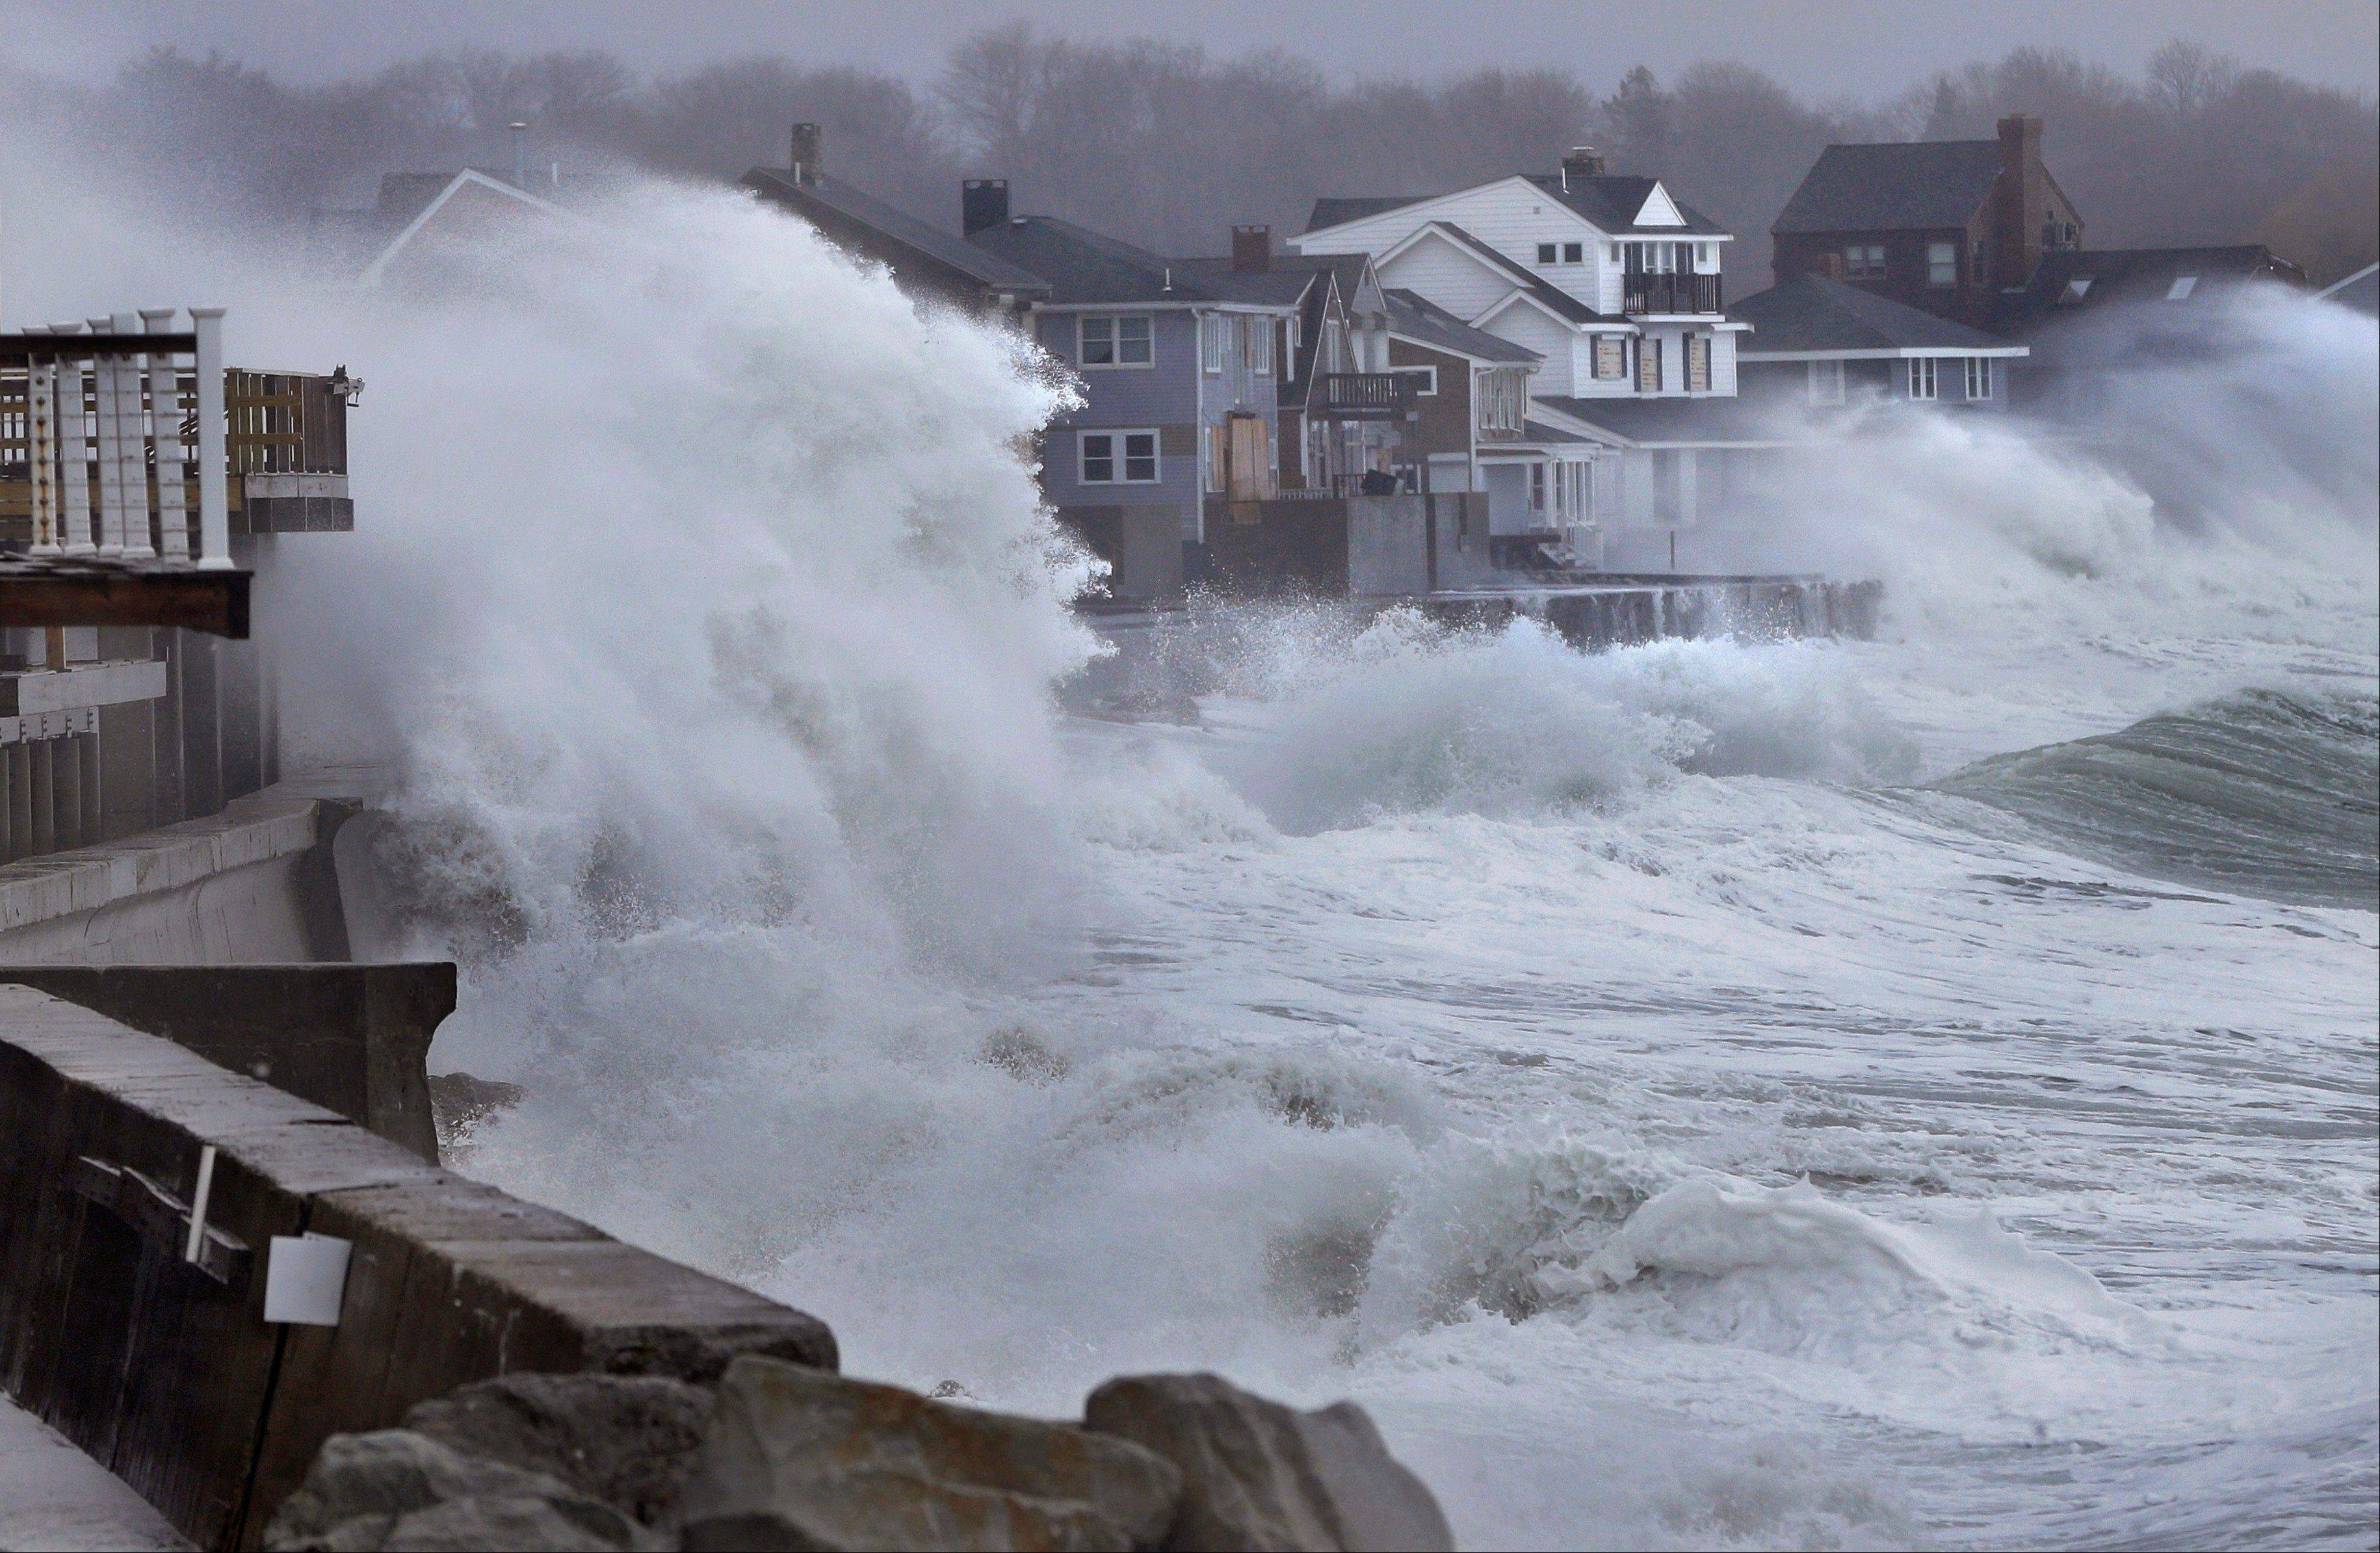 Ocean waves crash over a sea wall and into houses along the coast in Scituate, Mass., Thursday, March 7, 2013. A winter storm brought strong winds to coastal areas in the state.